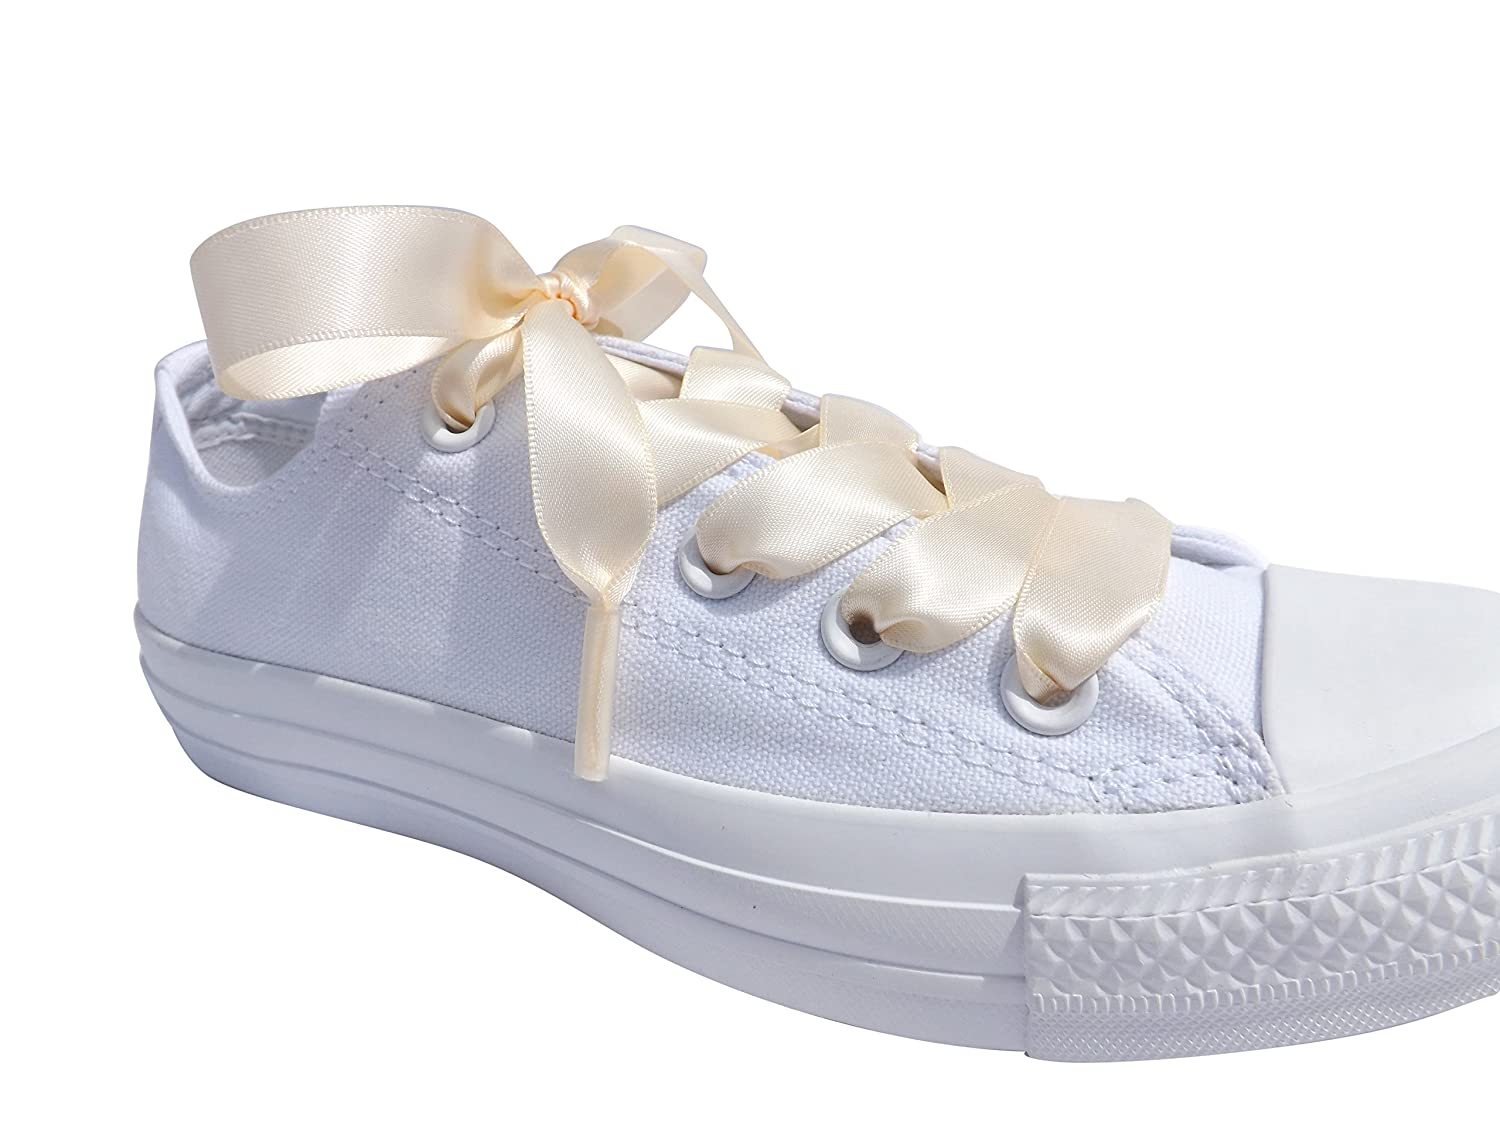 a943a38113ea Amazon.com  Cream Flat Satin Ribbon Shoelaces